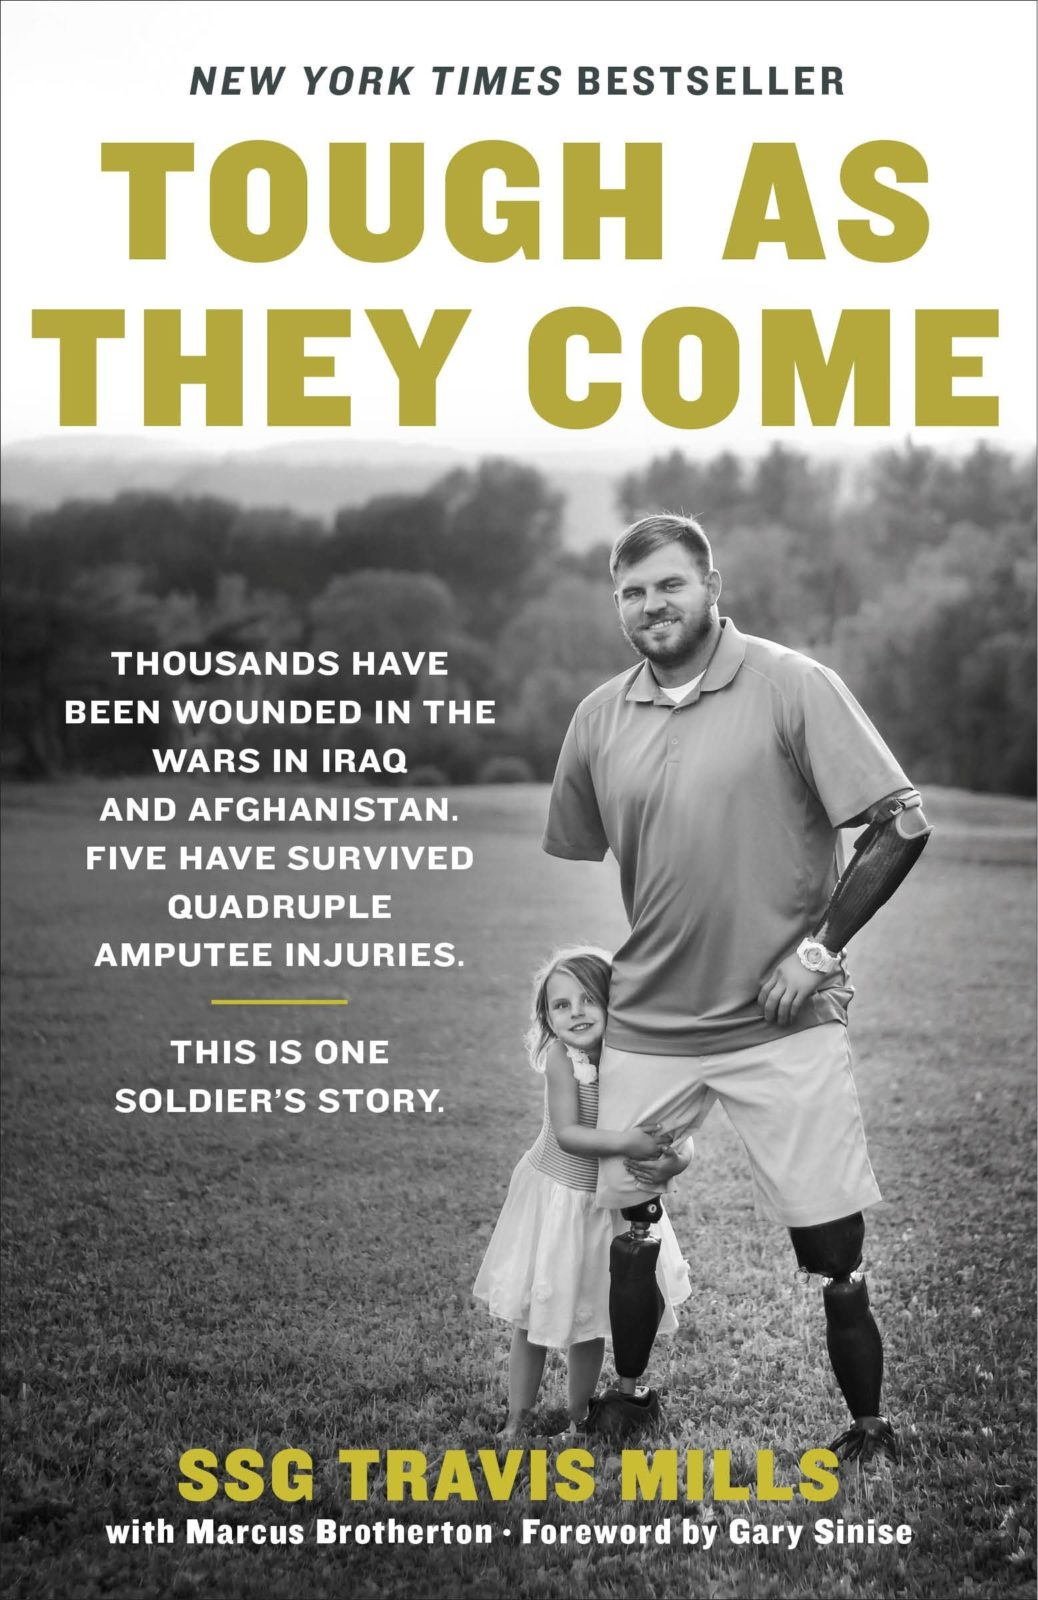 Image of book Tough As They Come a New York Times Best Seller about United States Army Staff Sergeant Travis Mills